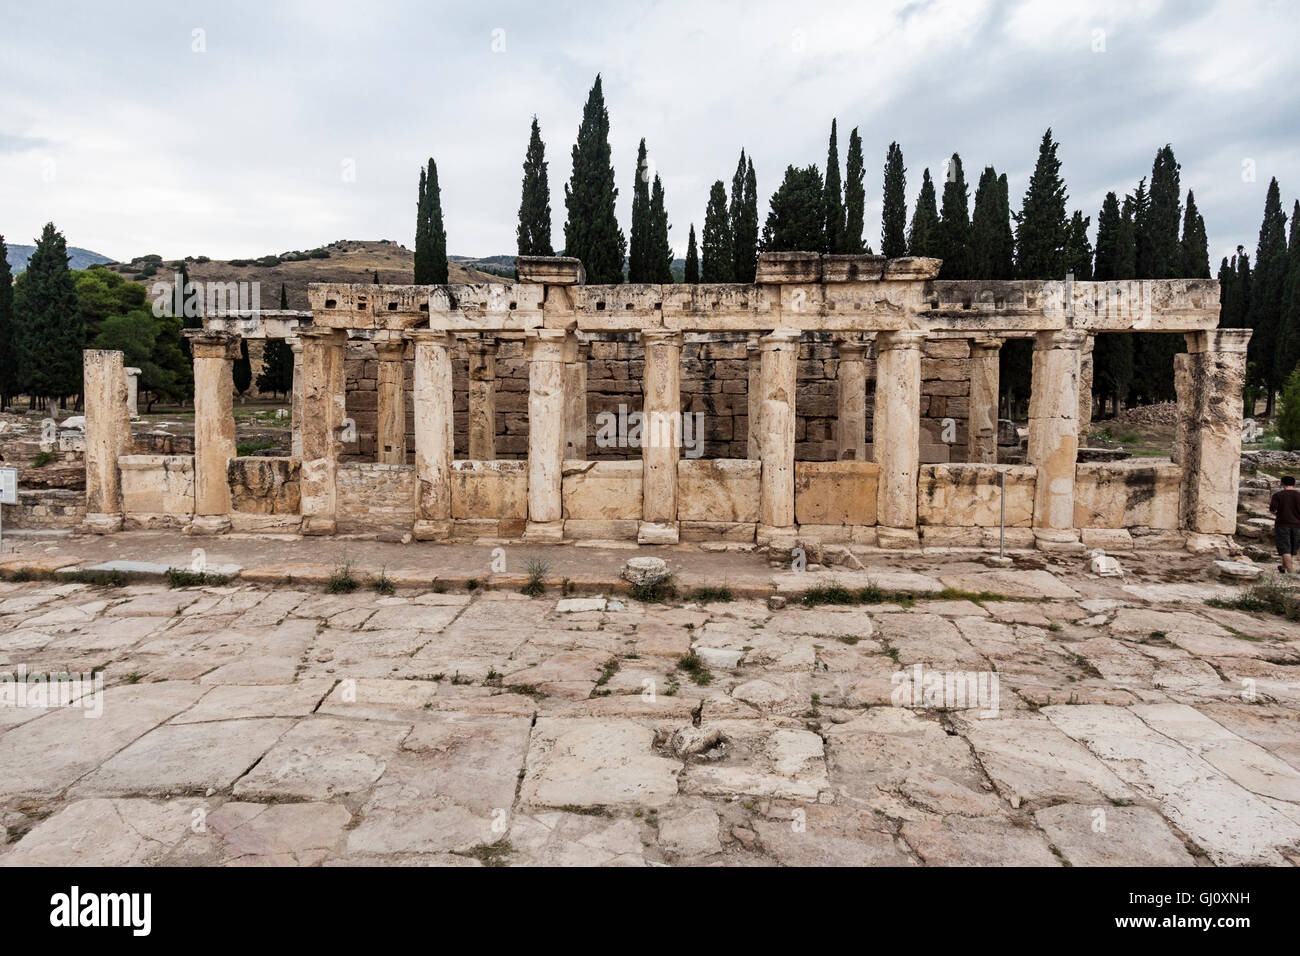 Hierapolis Pamukkale Ruins Turkey Stock Photo, Royalty Free Image: 114347005 ...